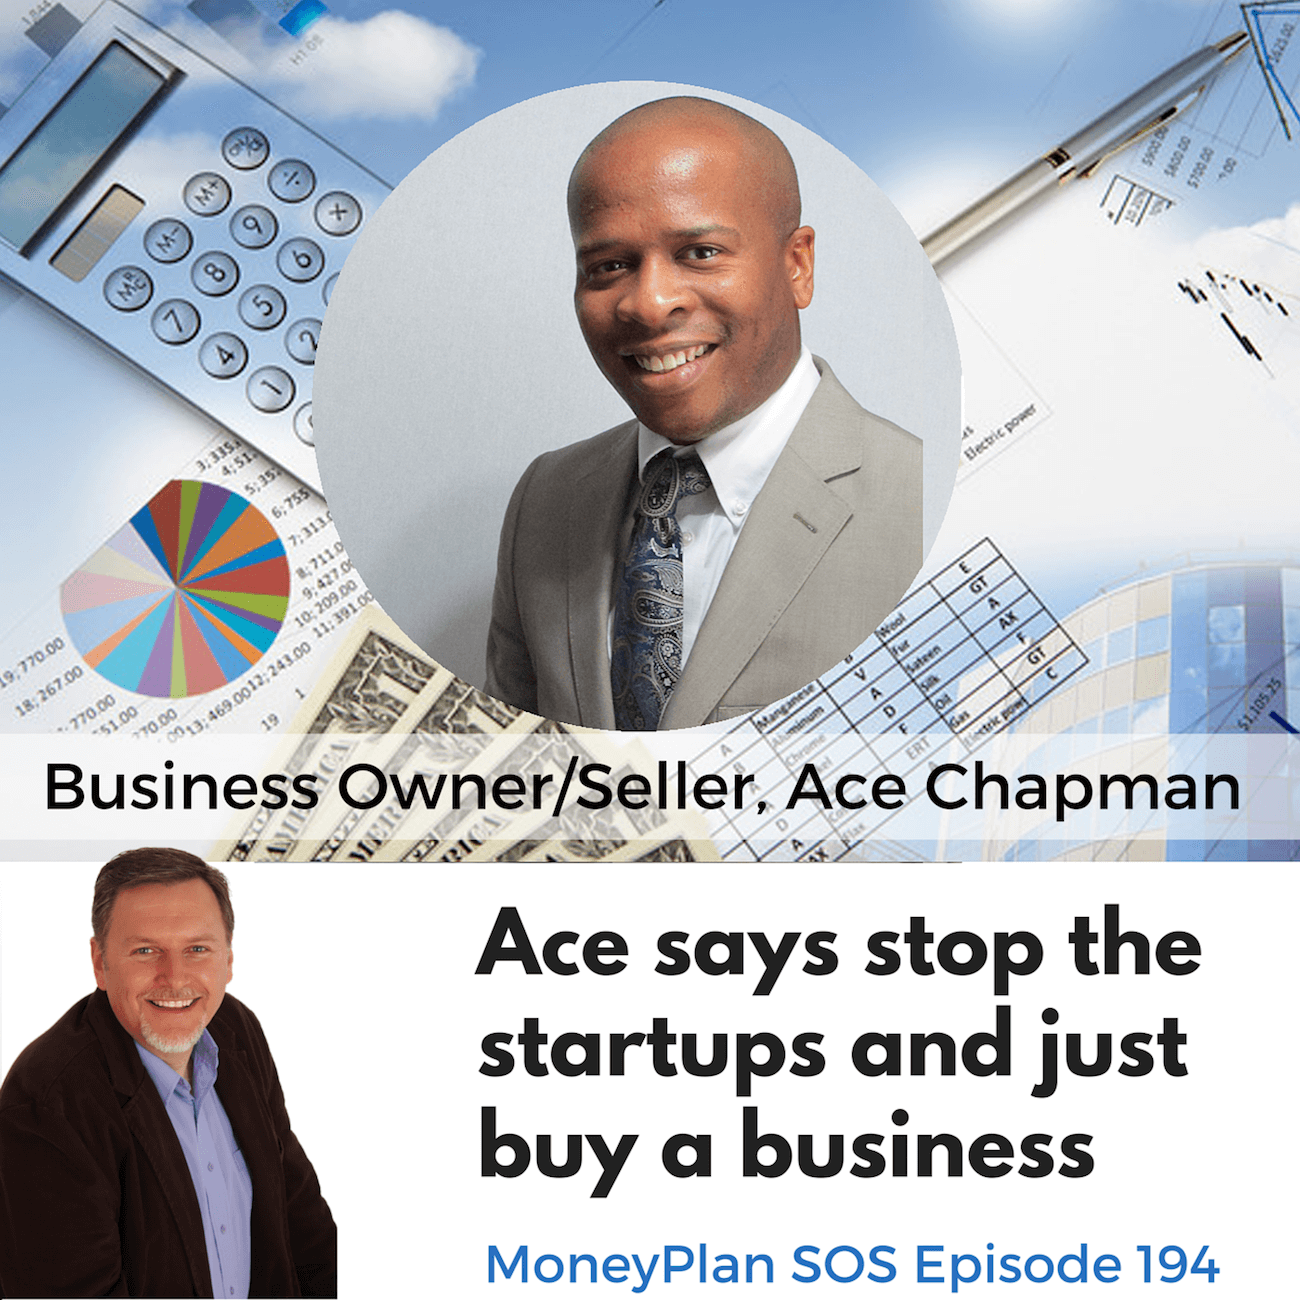 Ace Chapman Says Skip The Startup and Buy a Business